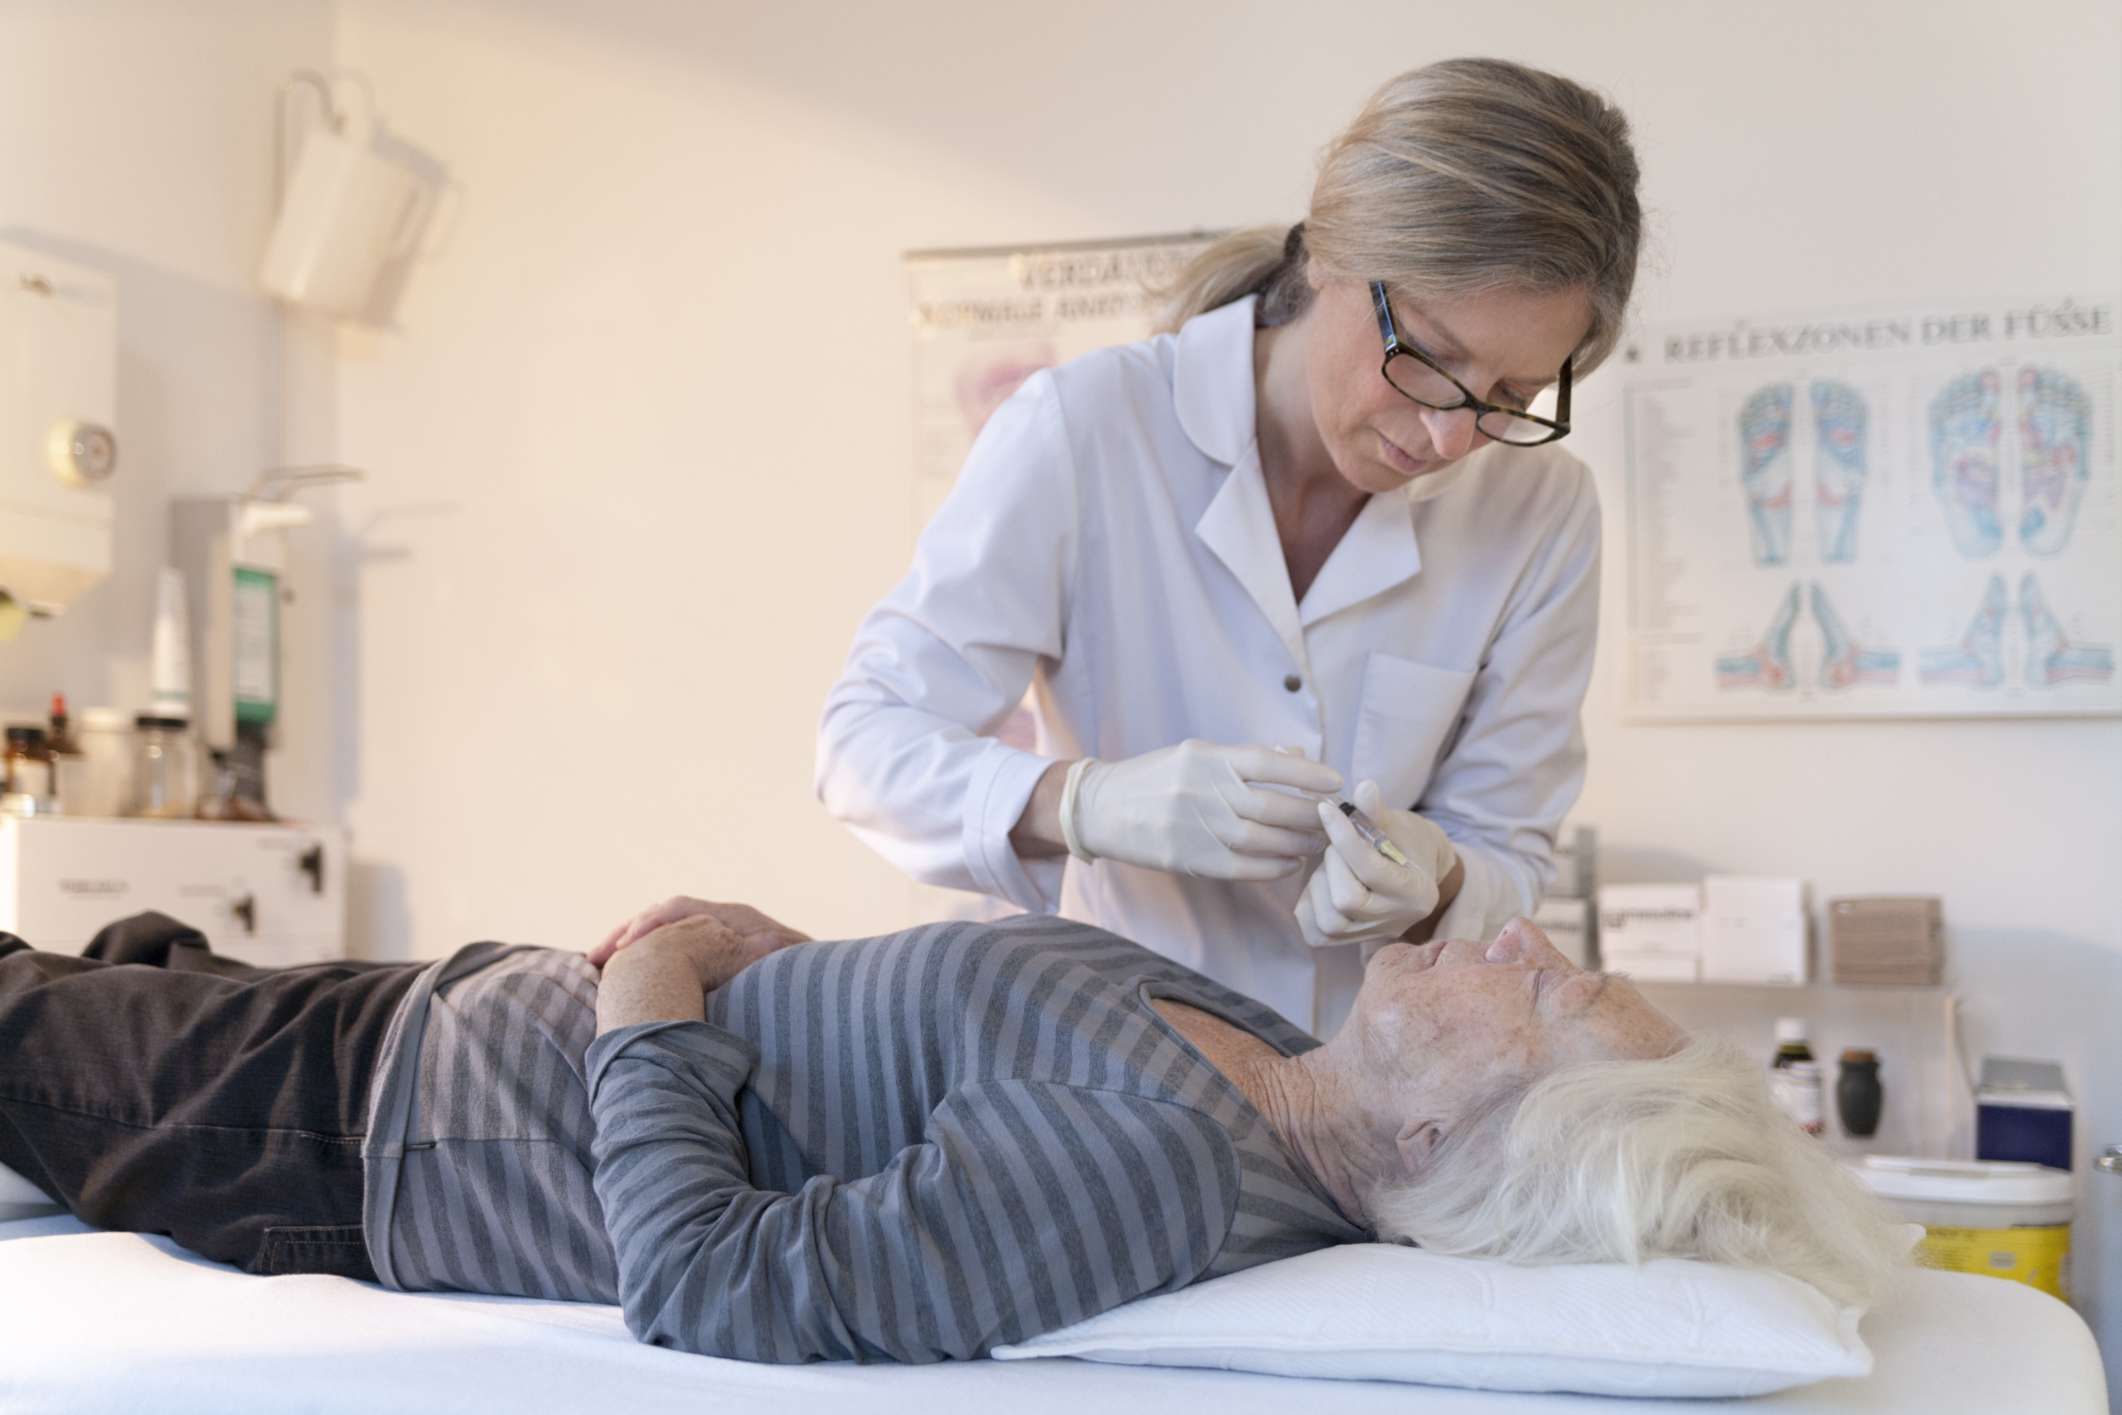 Older woman having acupuncture performed on her